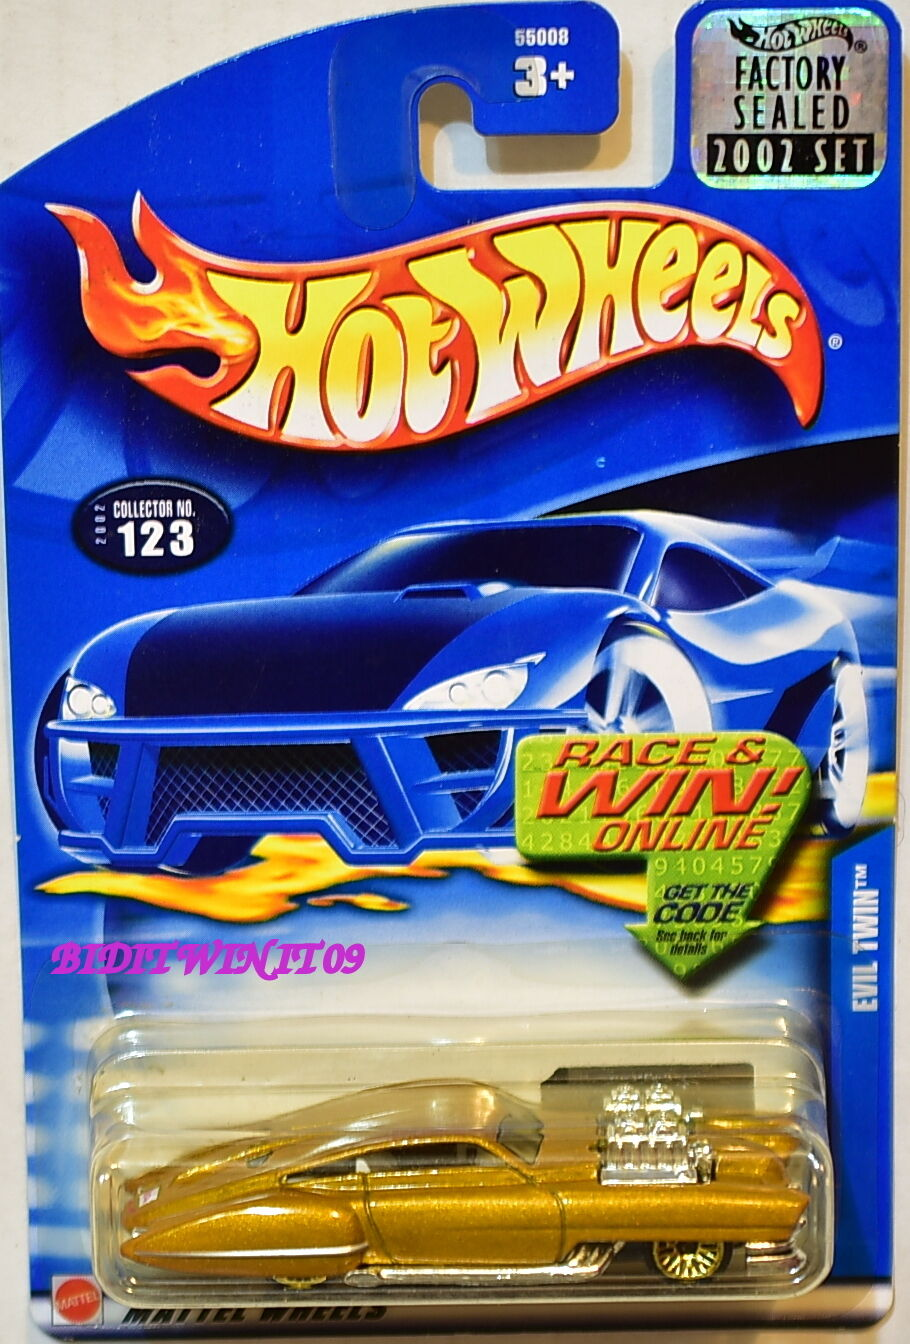 HOT WHEELS 2002 EVIL TWIN #123 GOLD FACTORY SEALED